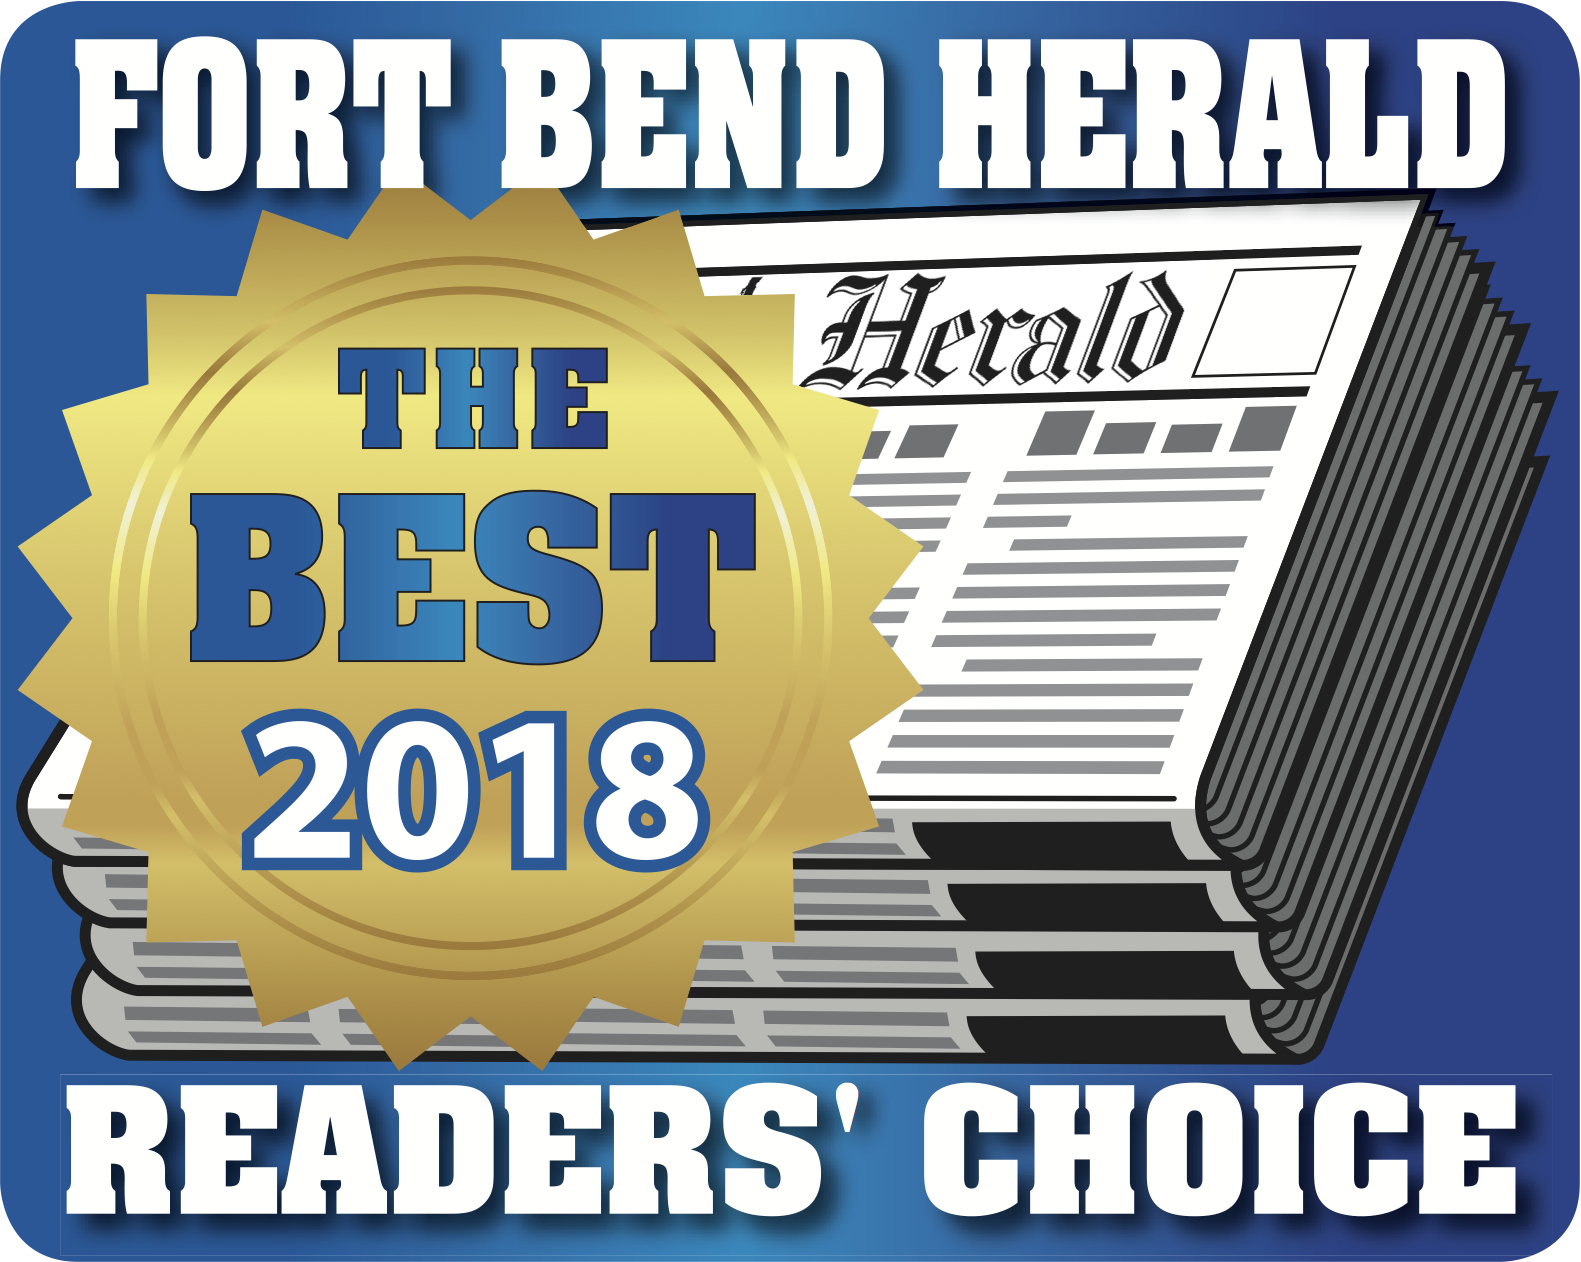 ReadersChoice-BestofLogo-2018 copy.jpg